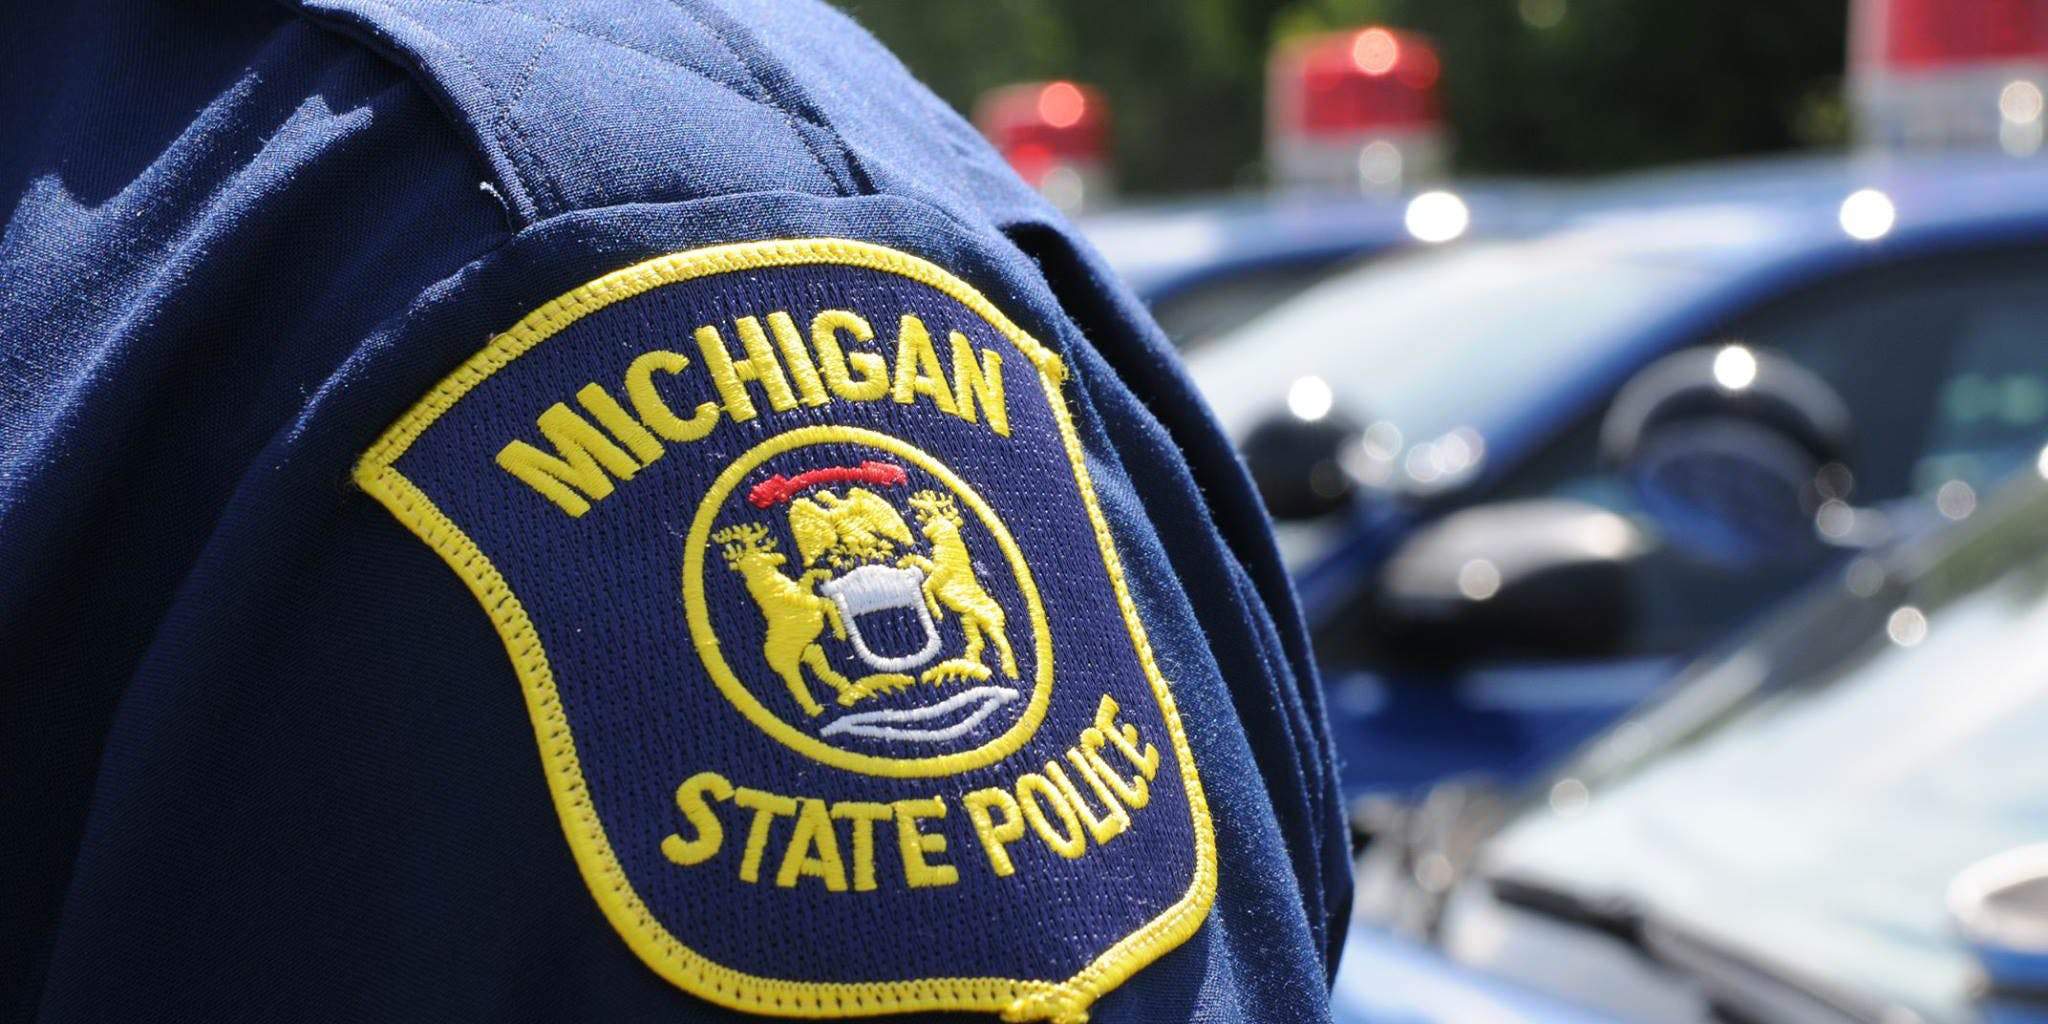 Police in Michigan are being accused of censoring pro-cannabis Facebook comments ahead of the legalization vote.